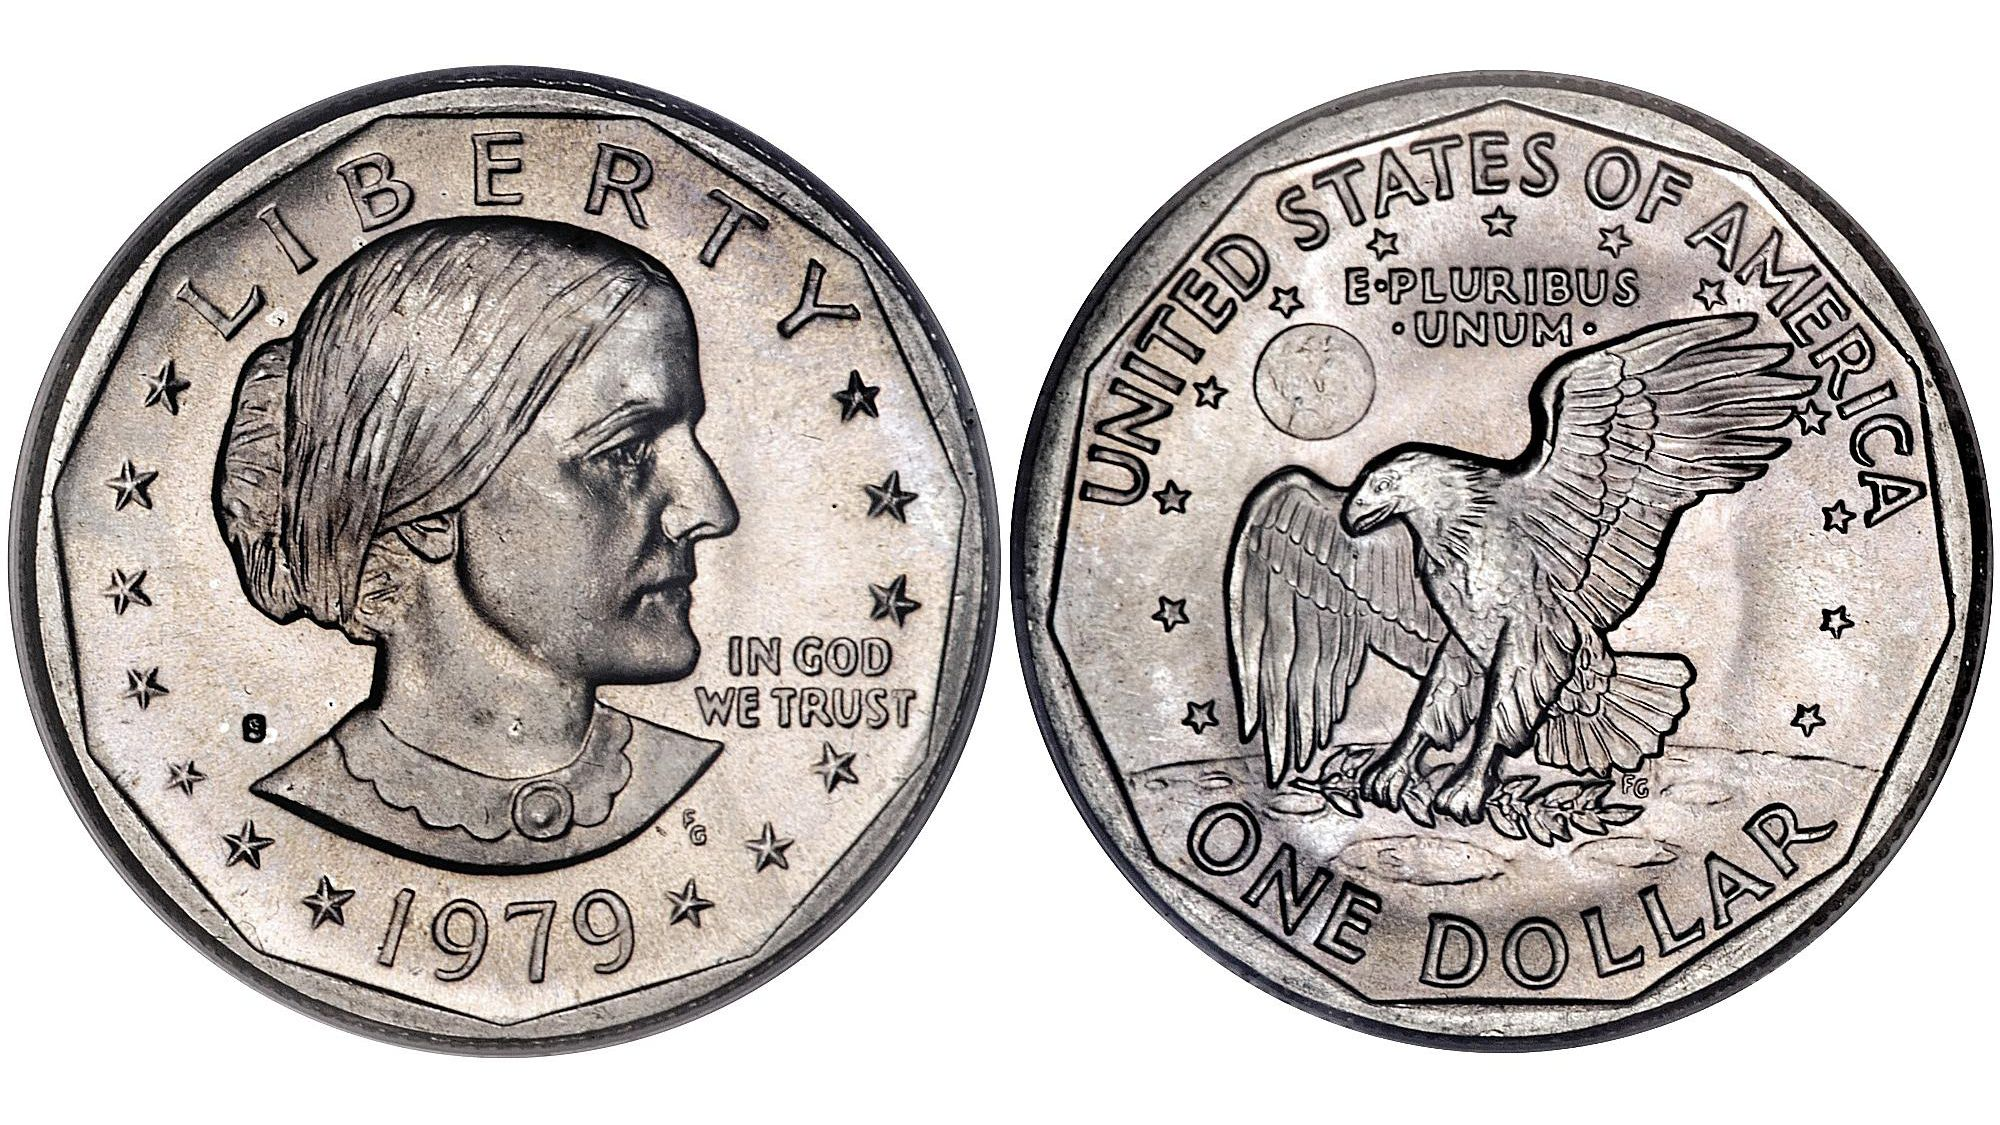 1979 Uncirculated Susan B Anthony Dollar Coin